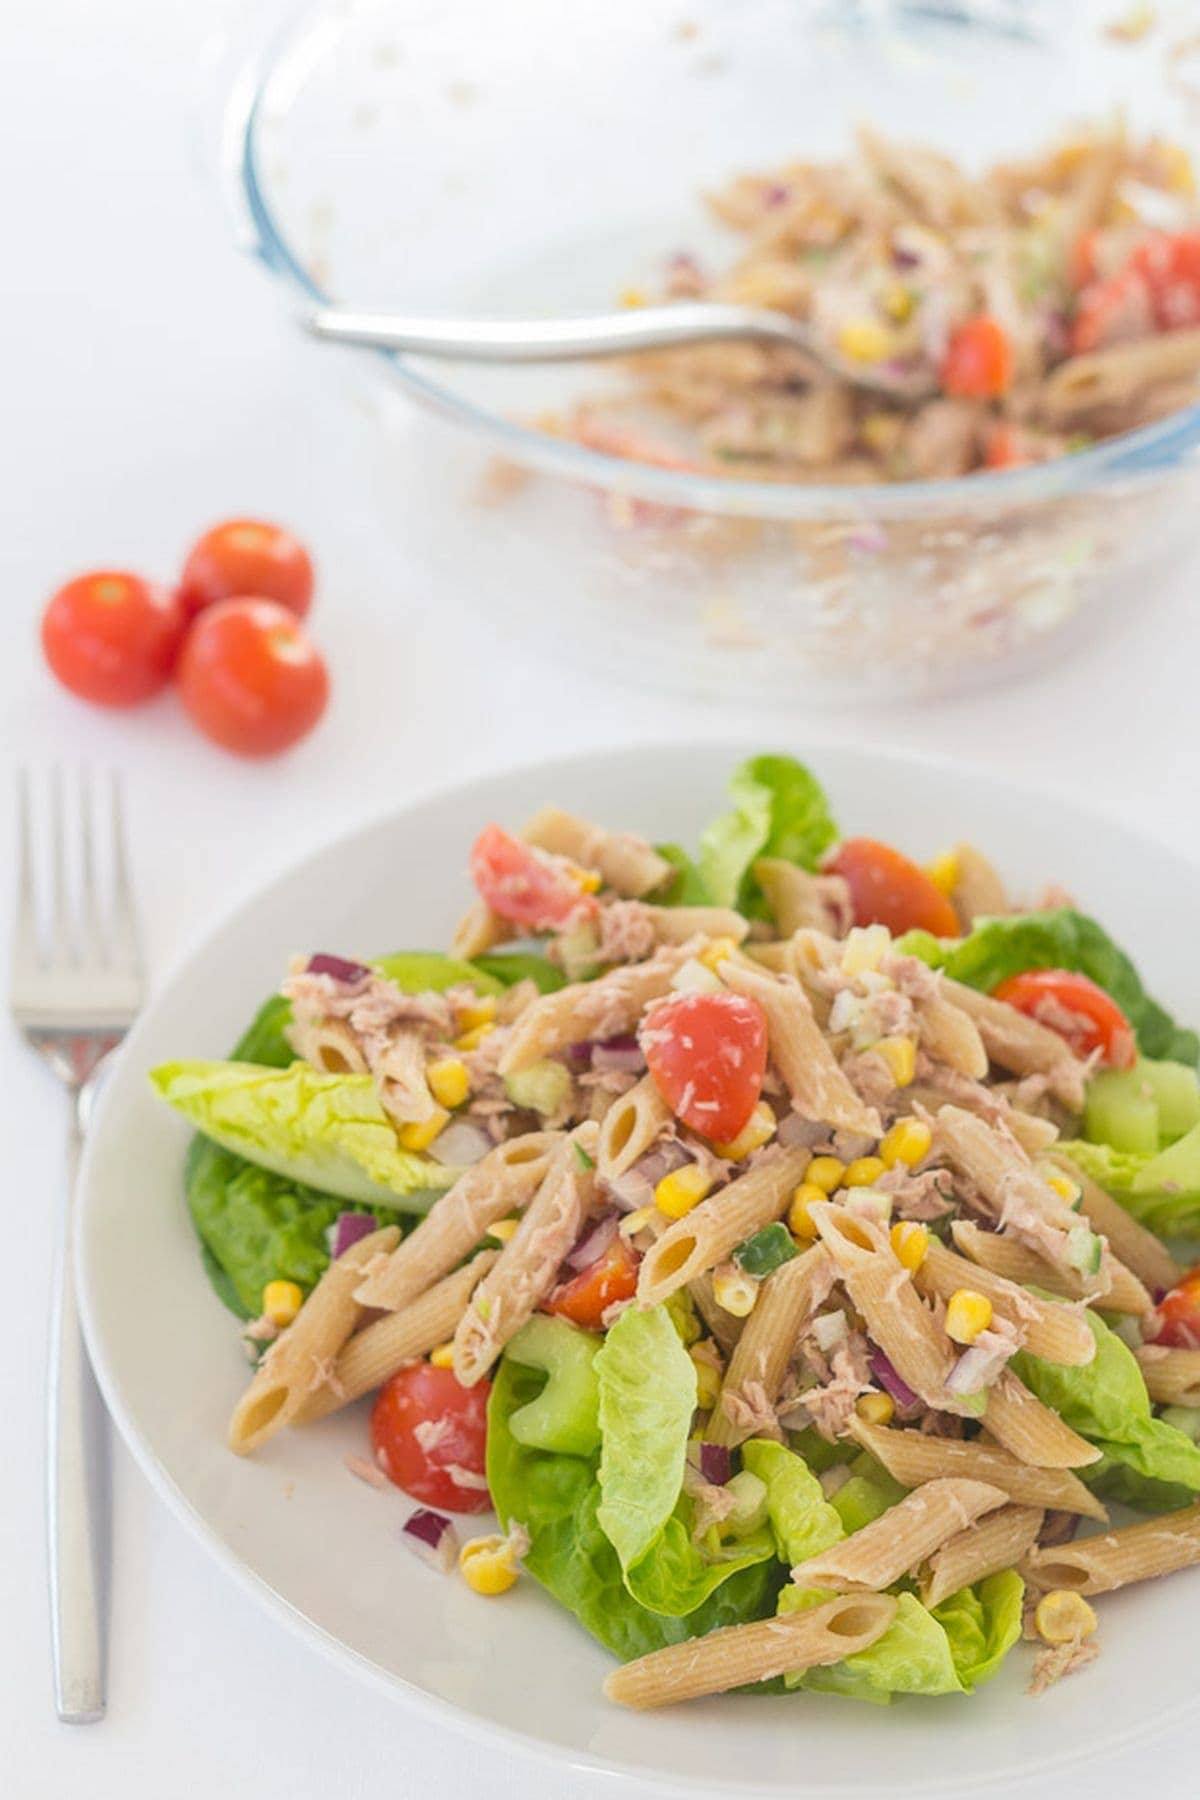 A plate of tuna and sweetcorn pasta salad with a bowl of the remainder of the pasta salad at the top.